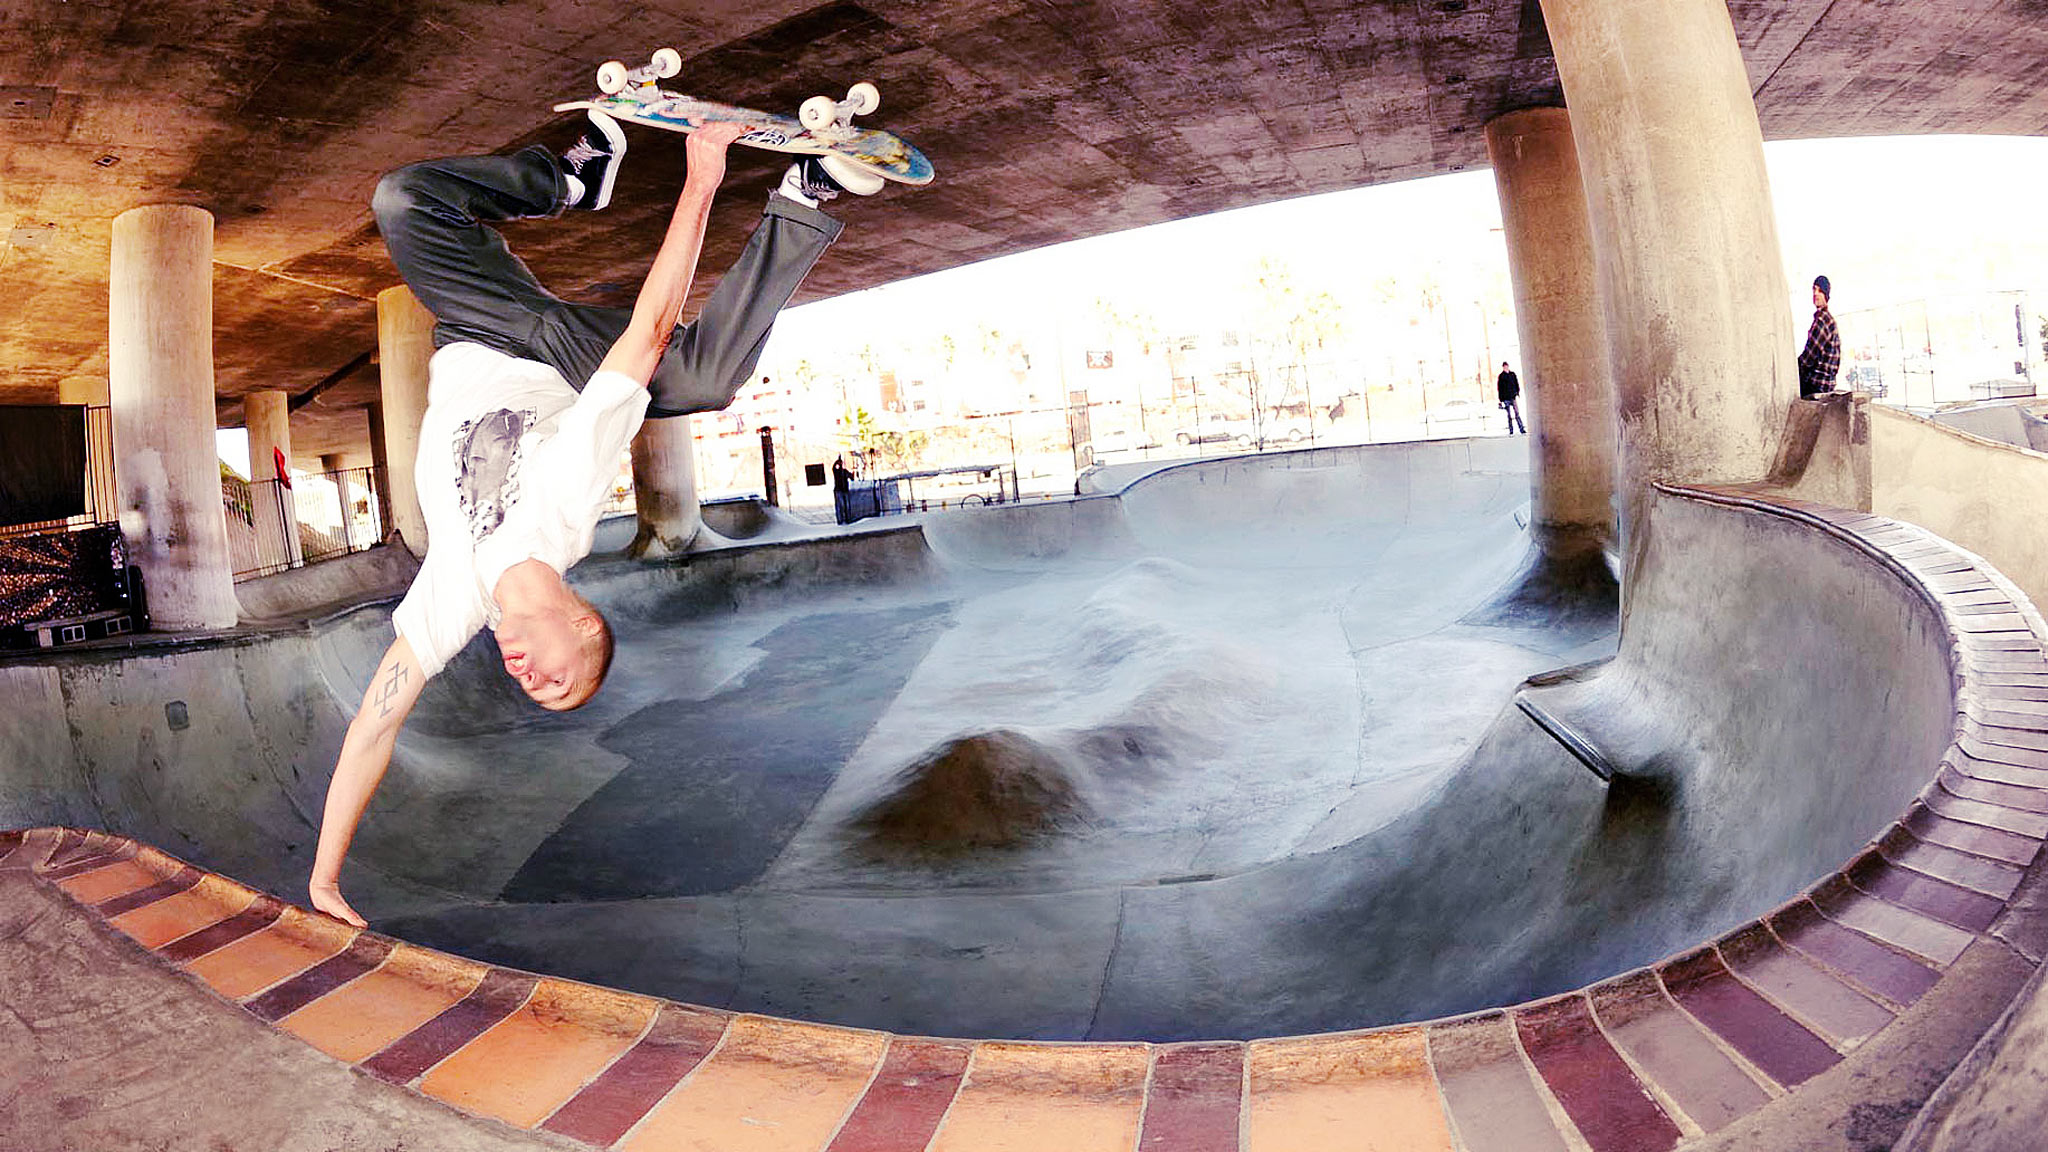 Chris Cope, Invert